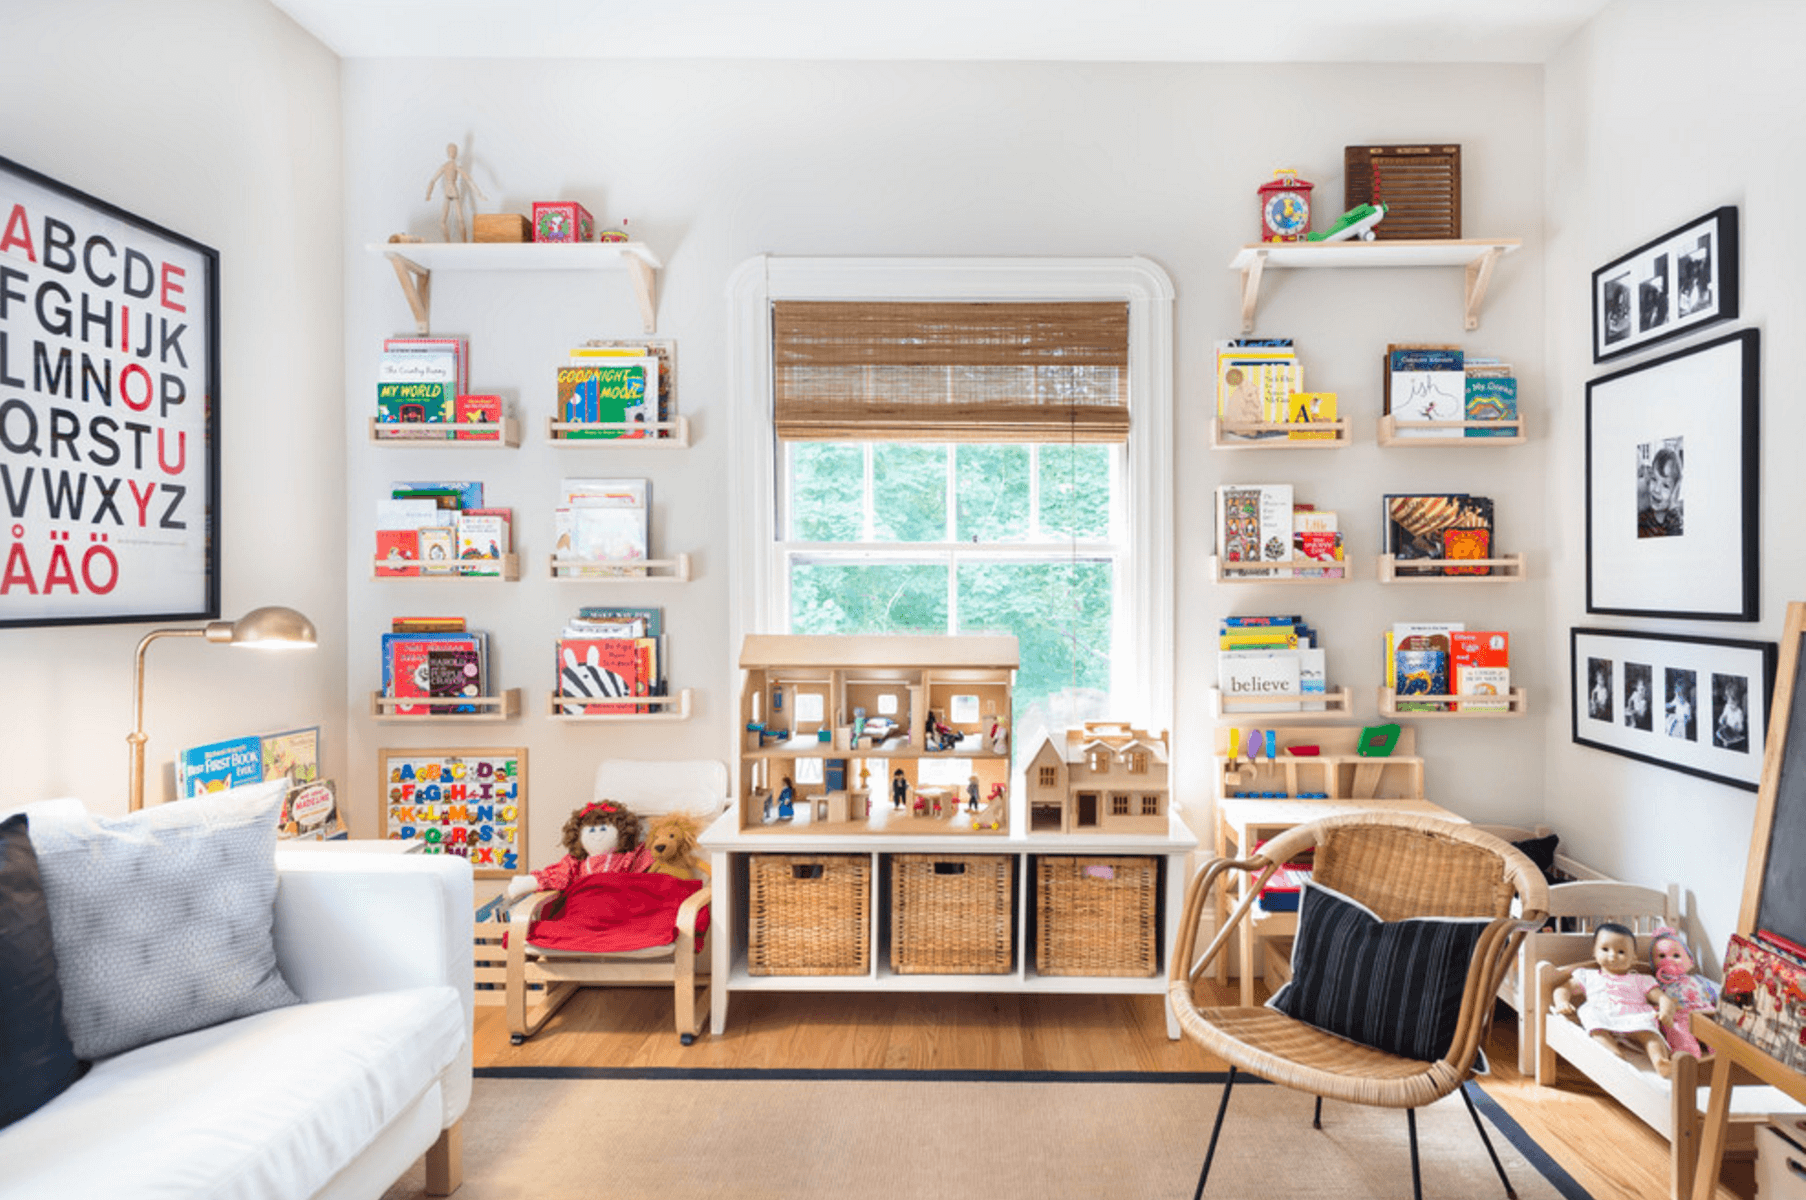 28 ideas for adding color to a kids room freshome com®kids rooms neutral1